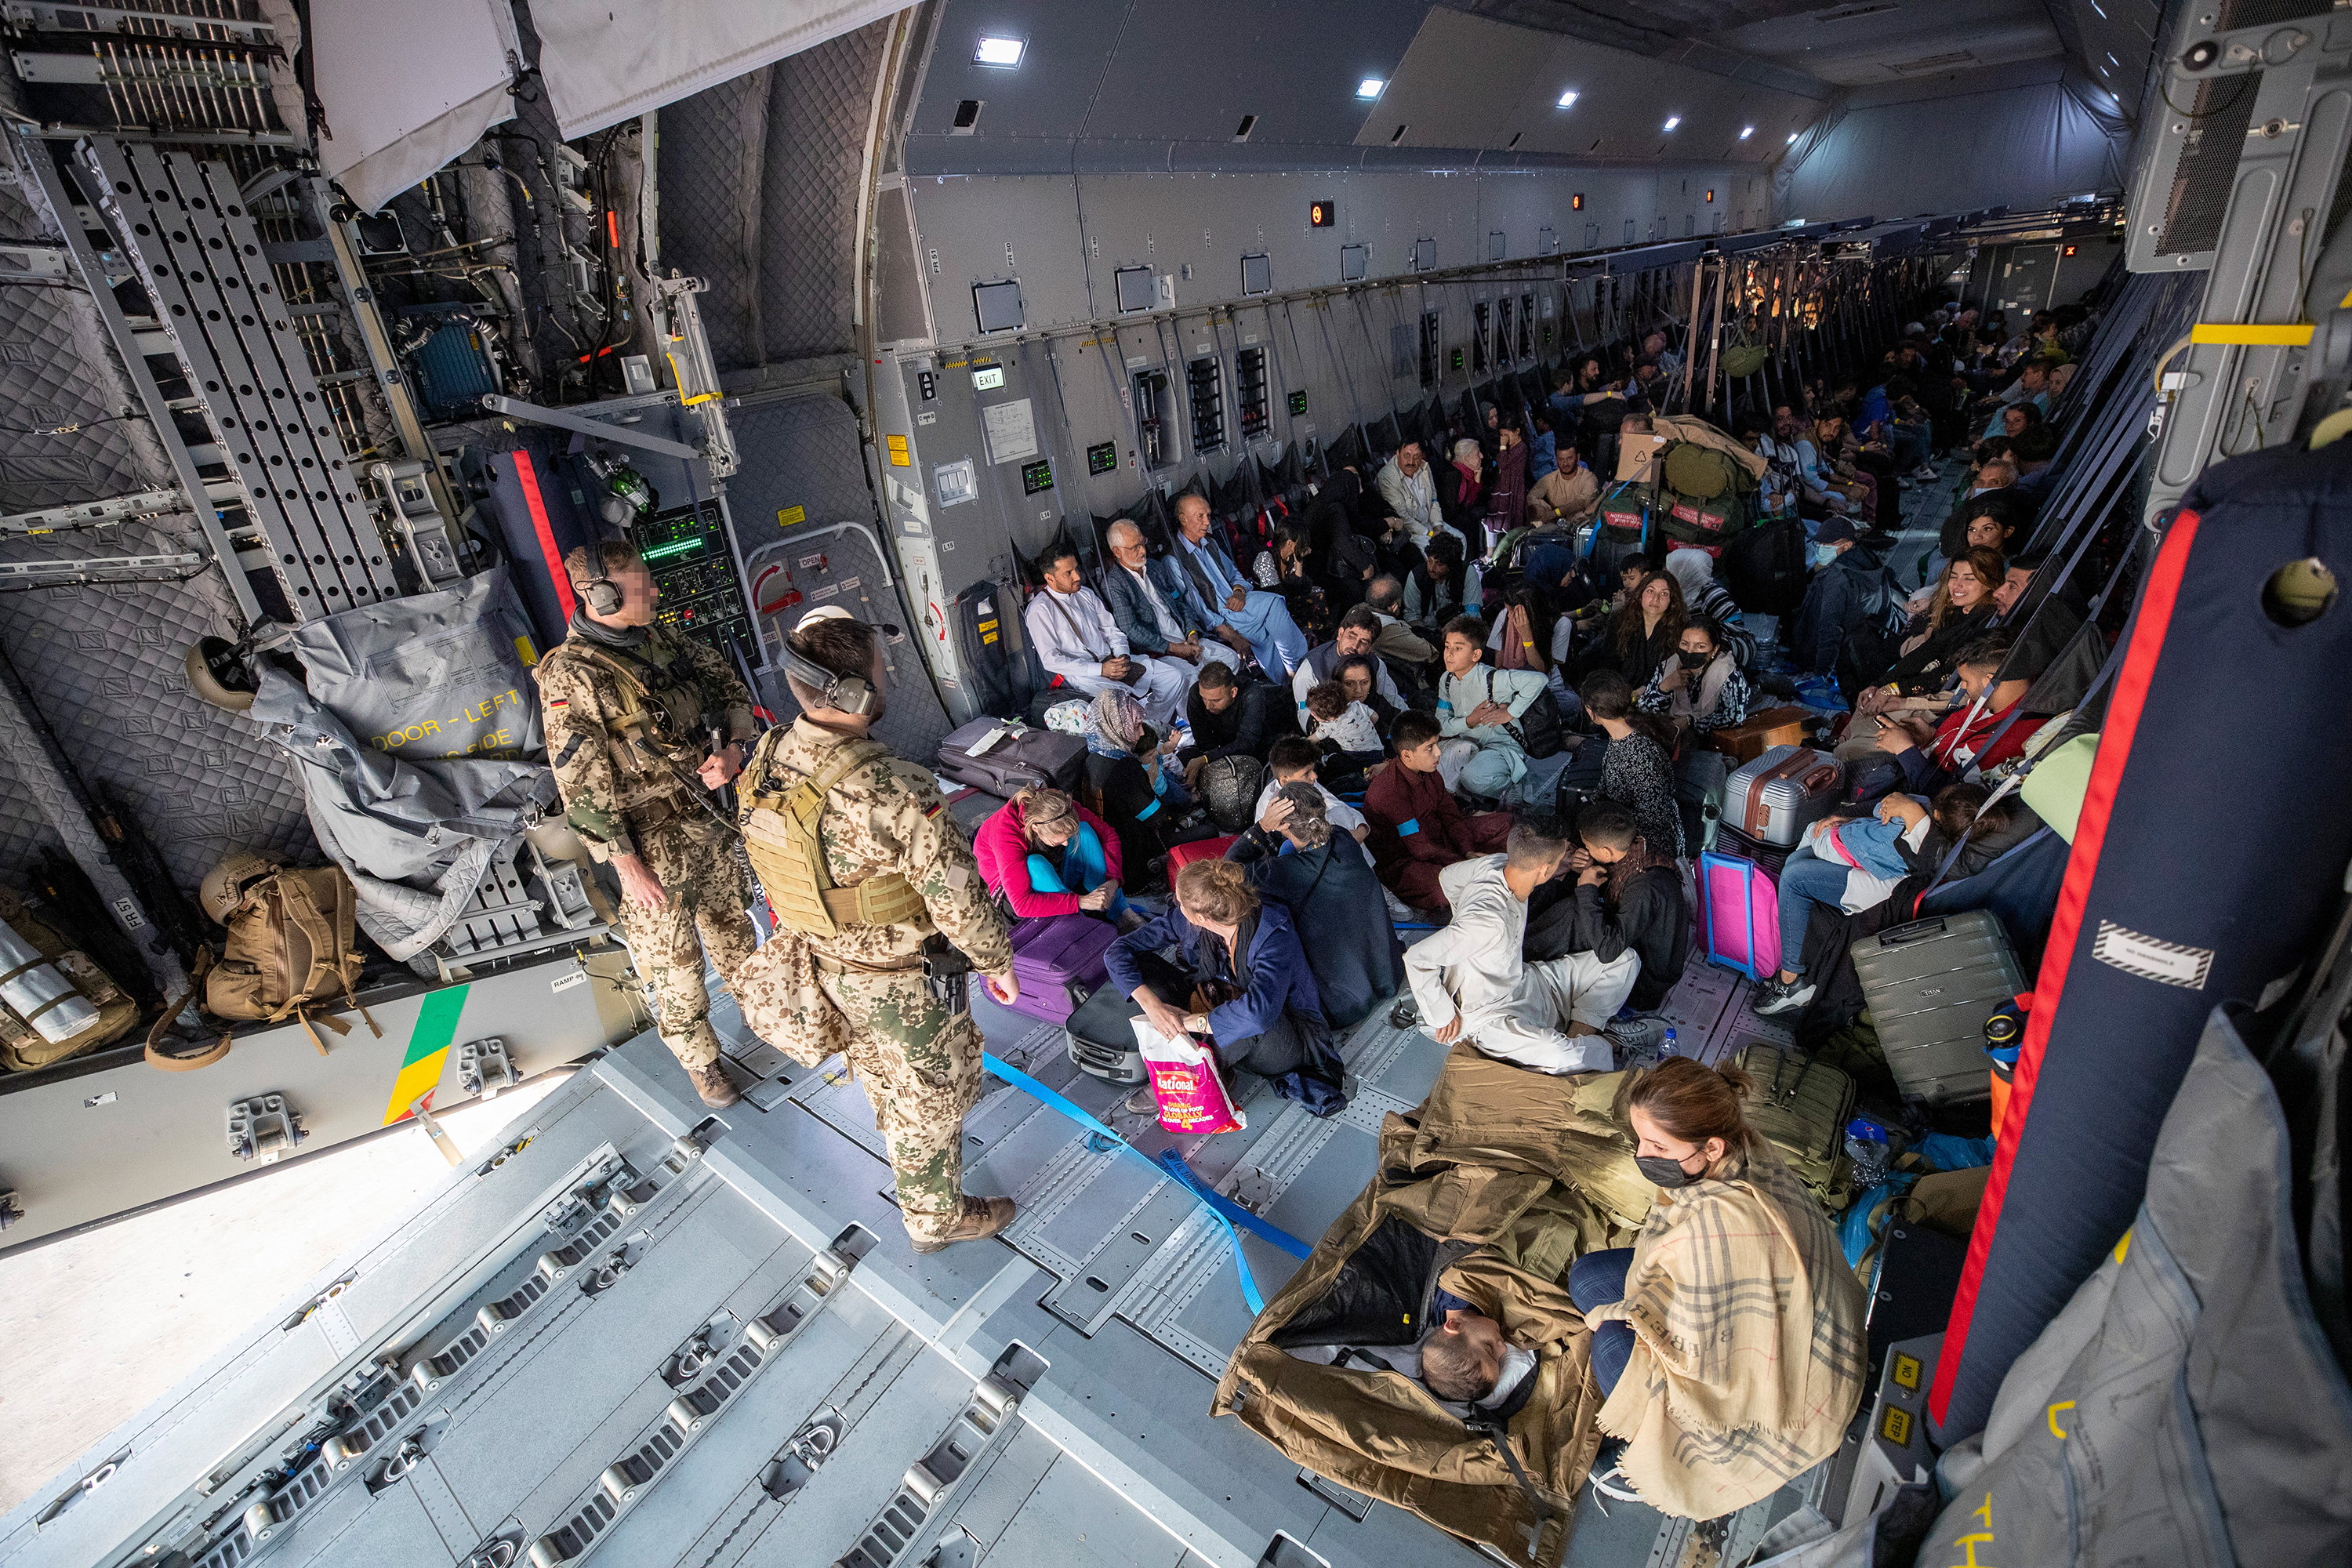 Evacuees from Kabul sit inside a military aircraft in Tashkent, Uzbekistan on August 17, before reaching their final destination in Germany.